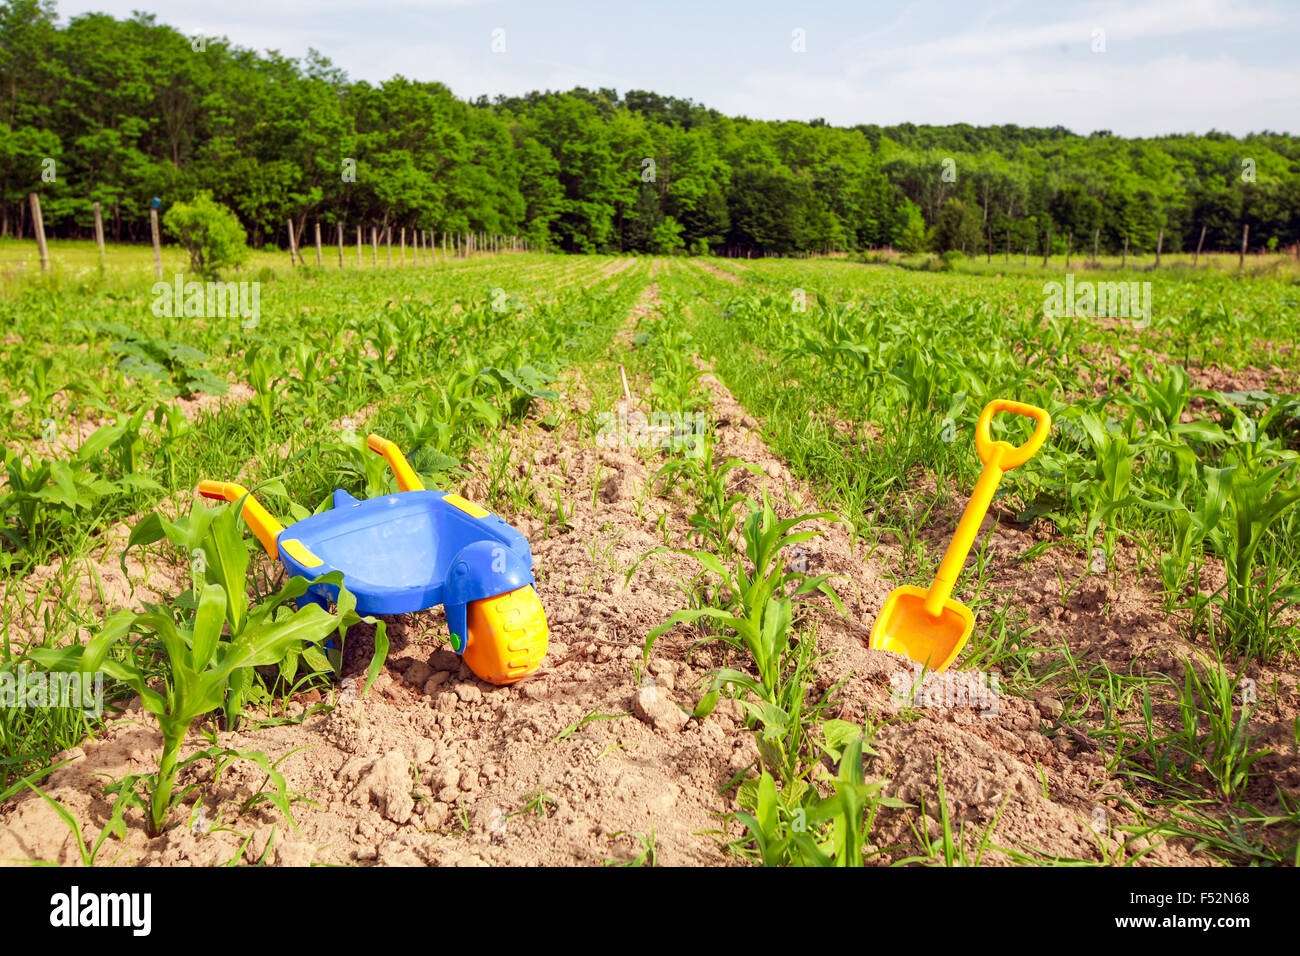 Construction Toy Tools In A Primitive Undeveloped Agriculture - Stock Image